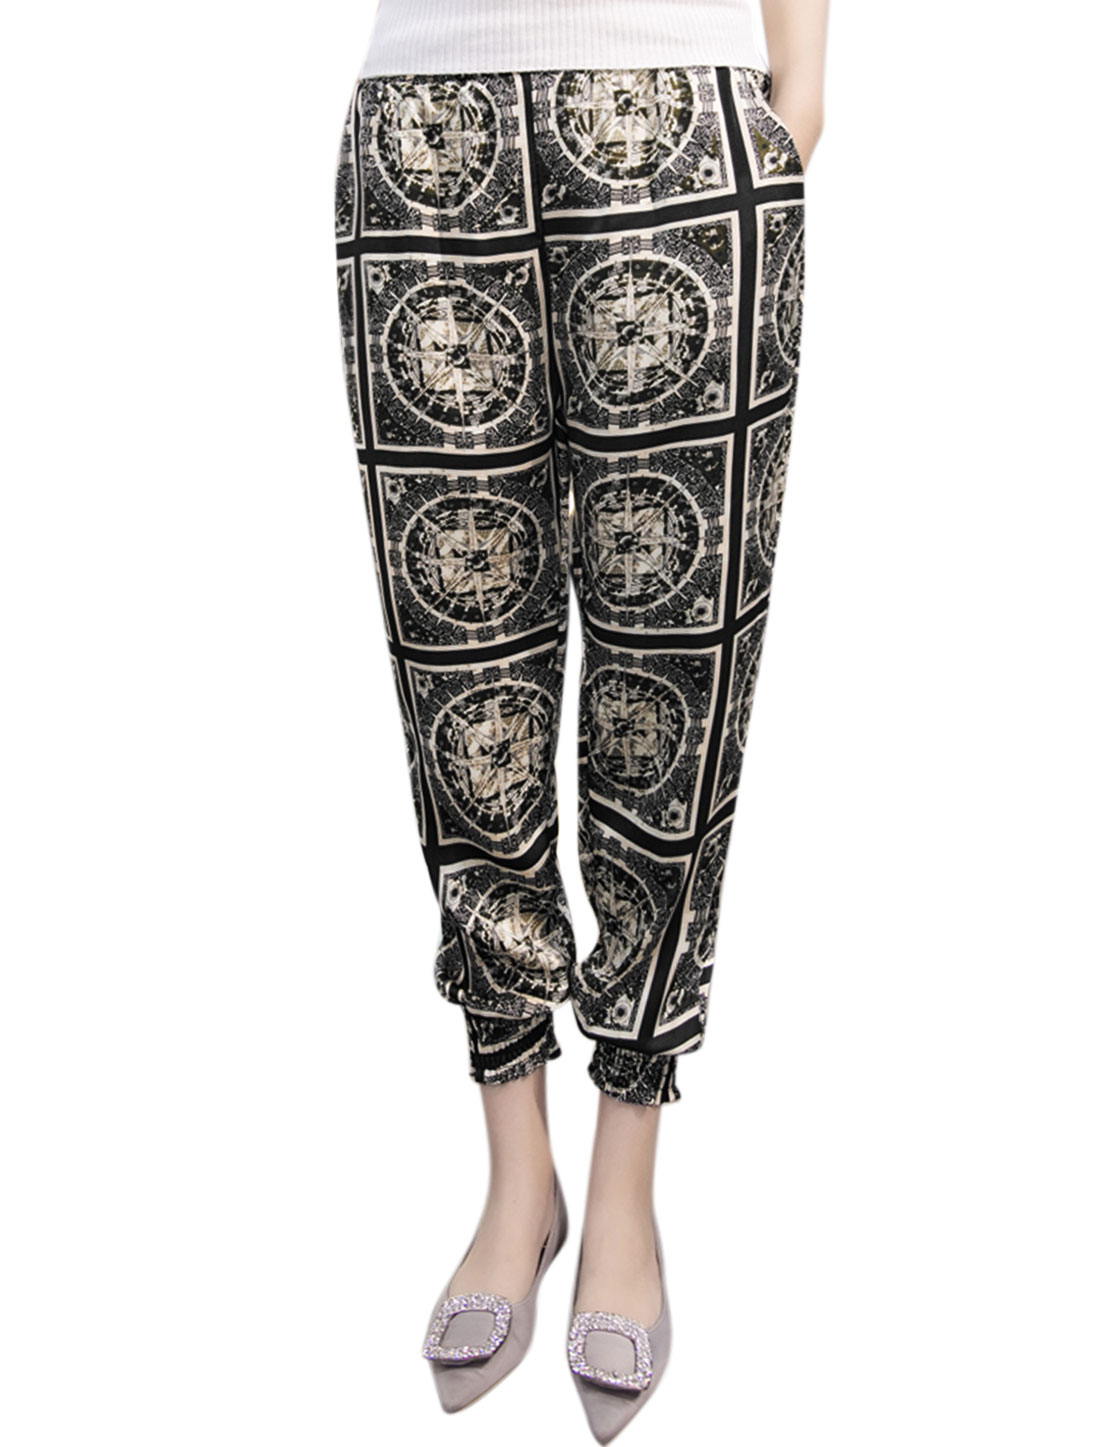 Women Compass Prints Smocked Cuffs Cropped Pants Black M